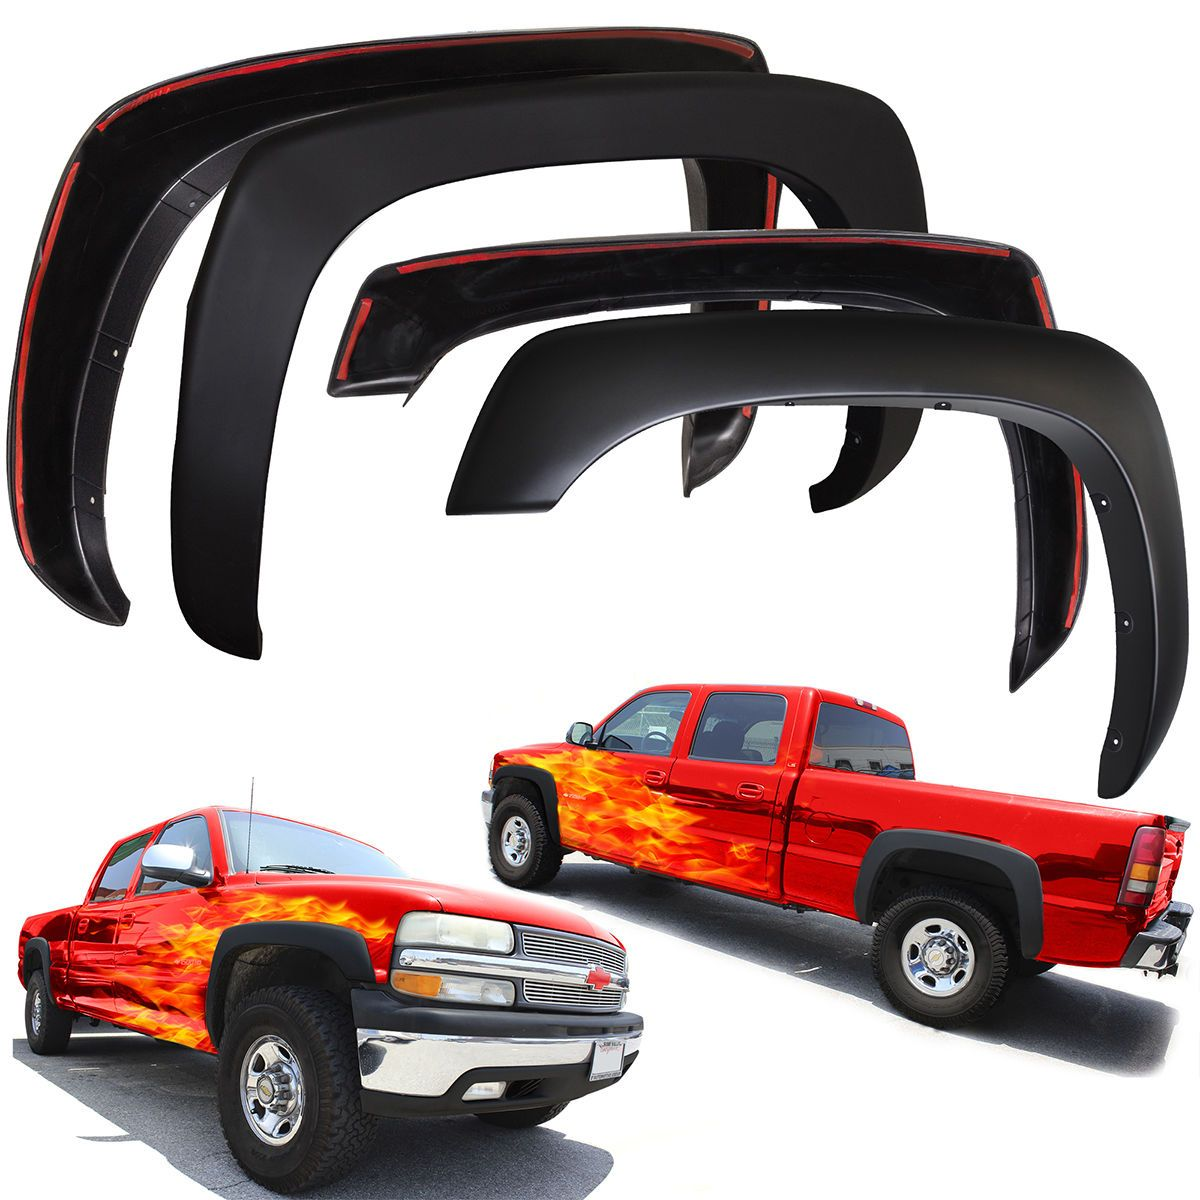 Silverado 2003 chevy silverado 1500 accessories : Fender Flares for Chevy Silverado 99-06 Set of 4 Paintable Matte ...